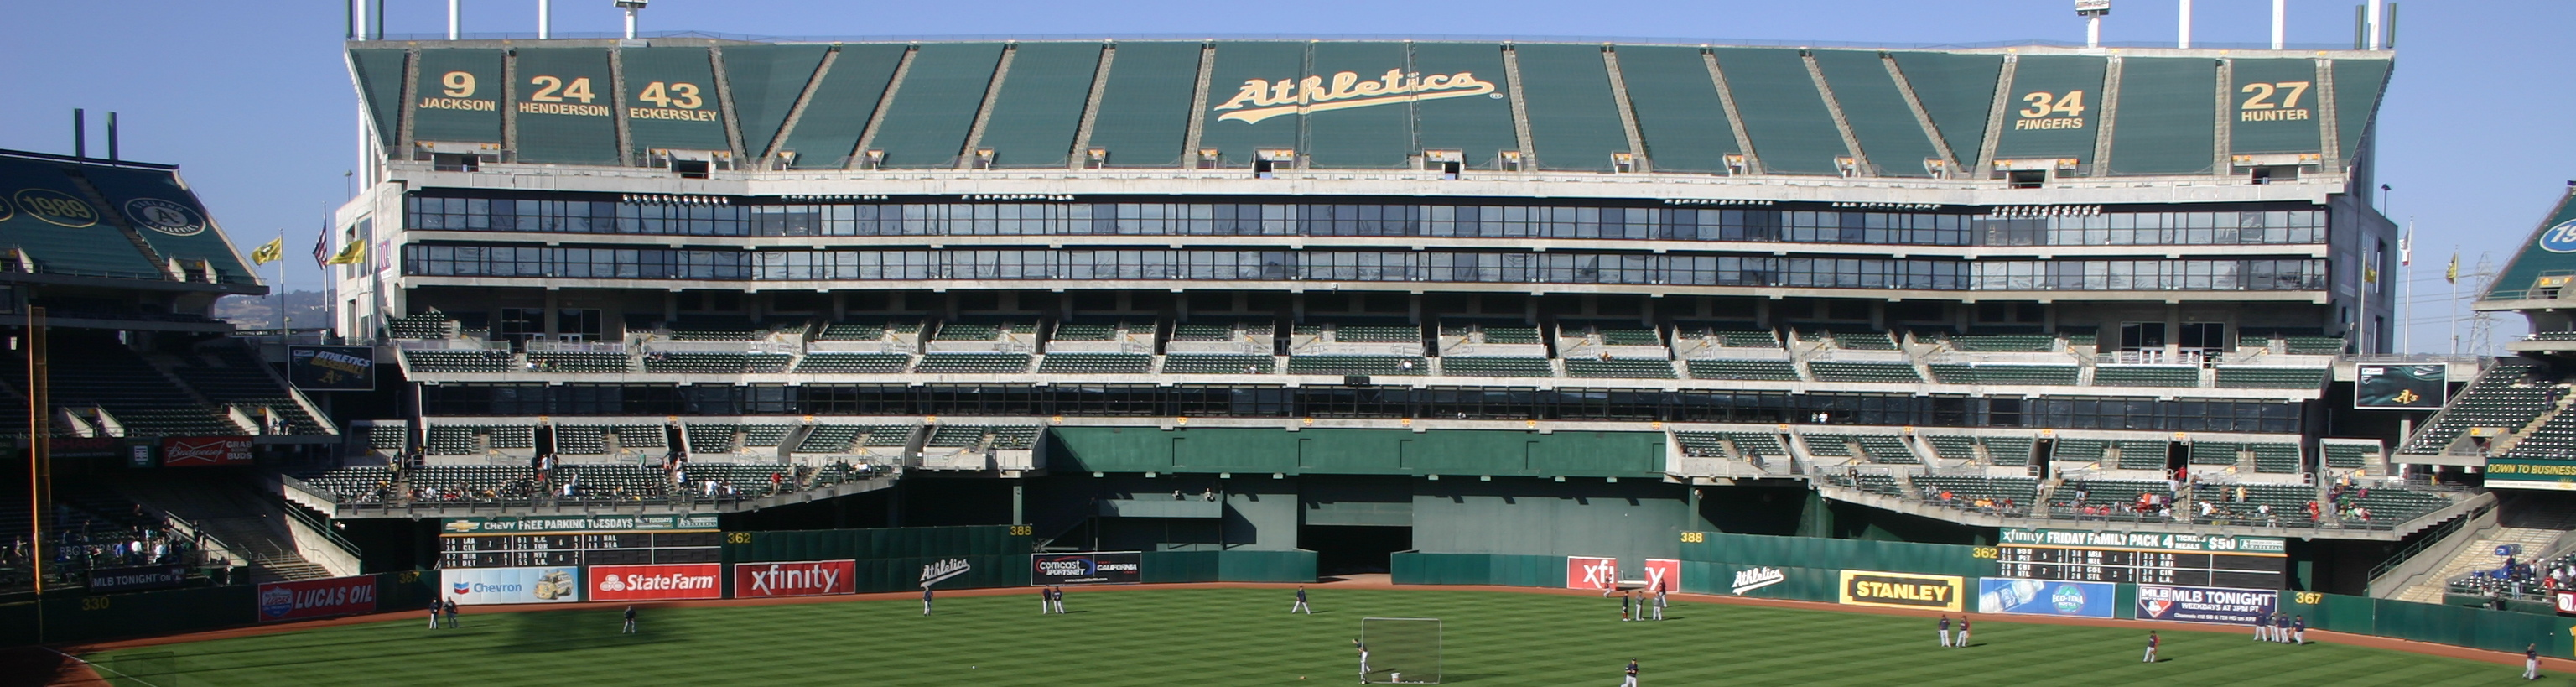 Oakland_Coliseum_Outfield.jpg